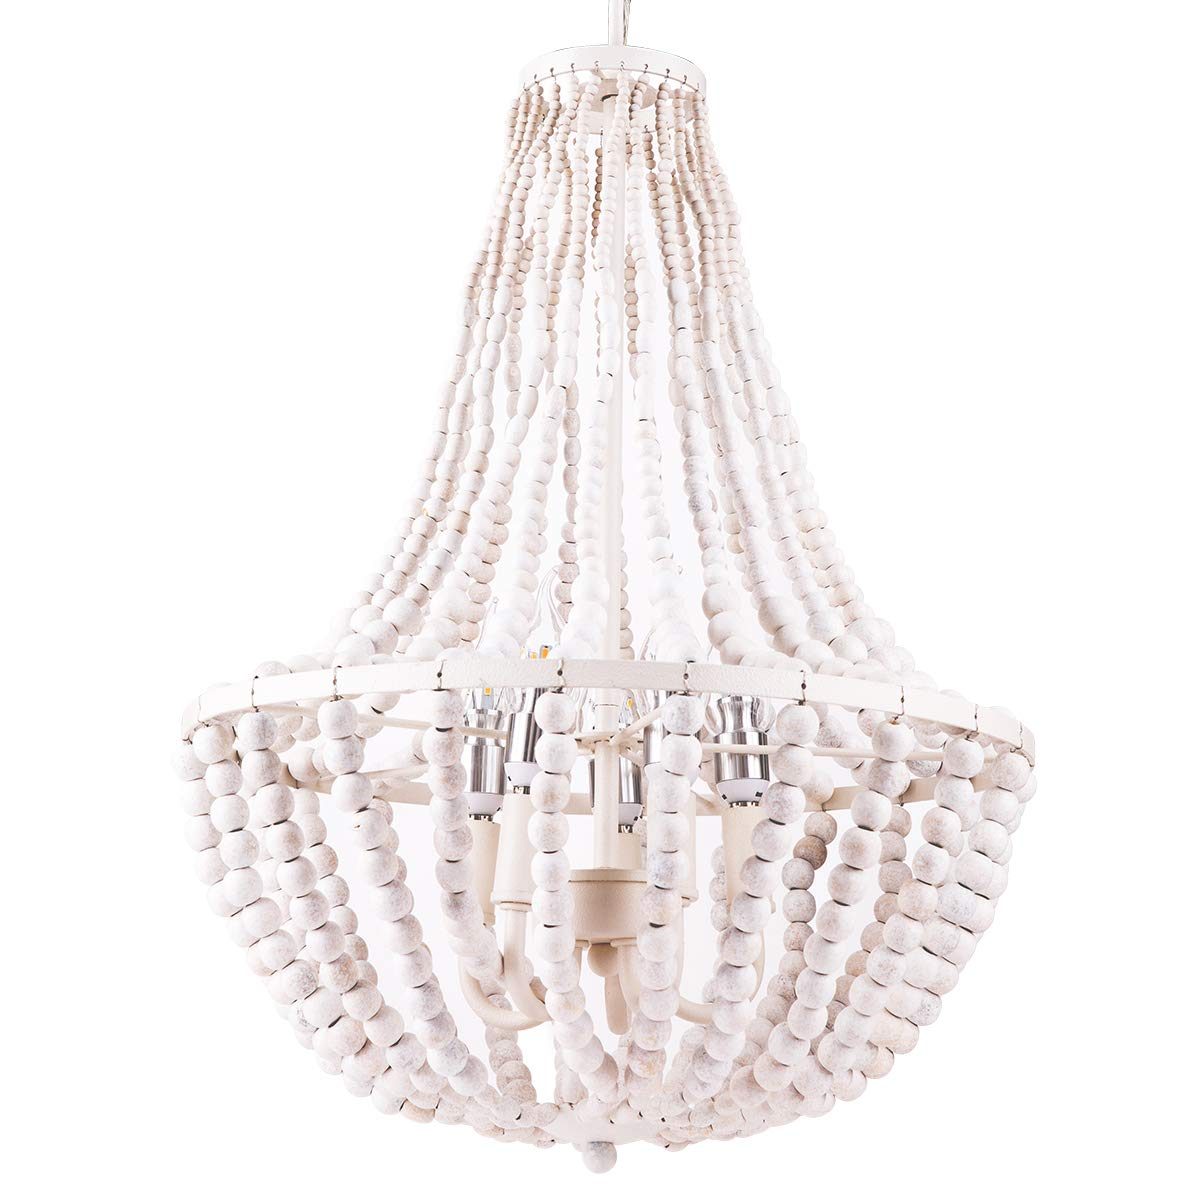 Chandelier, Morden Fort LED Chandelier 5 Lights for Living Room/Bed Room/Dining Room by Morden Fort (Image #1)